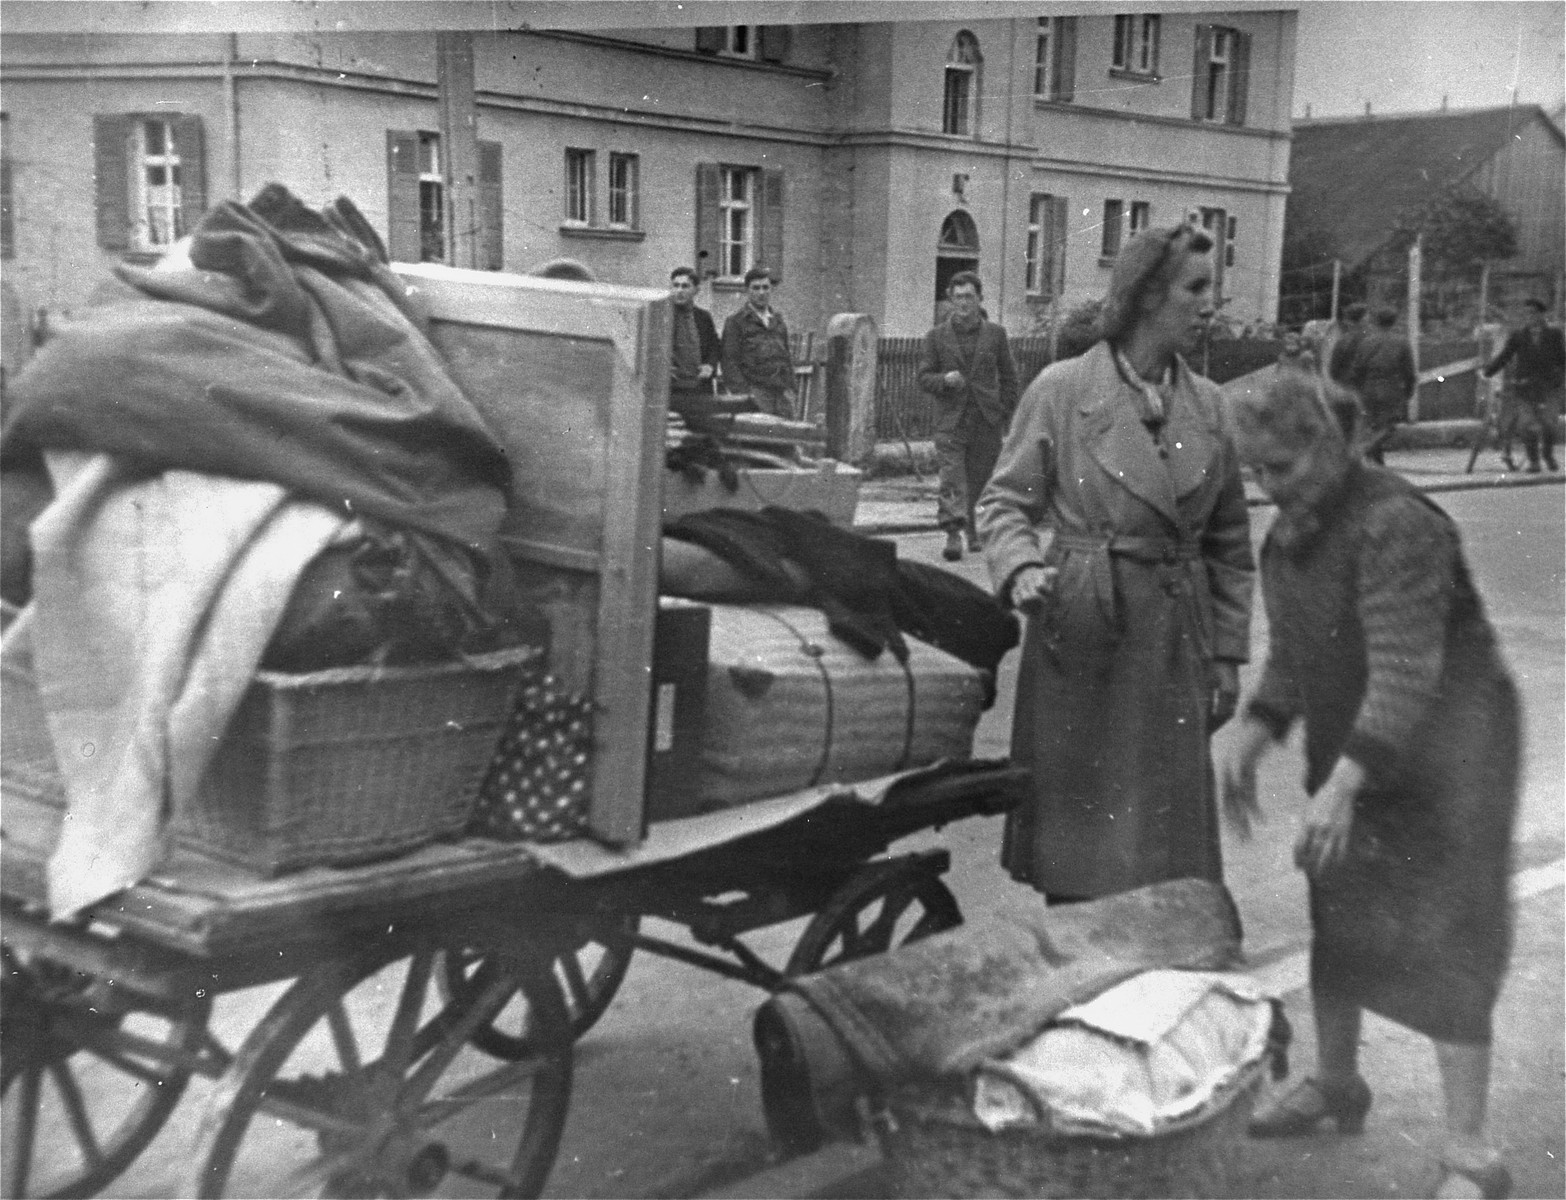 German women are forced to evacuate their homes to make room for Jewish displaced persons.